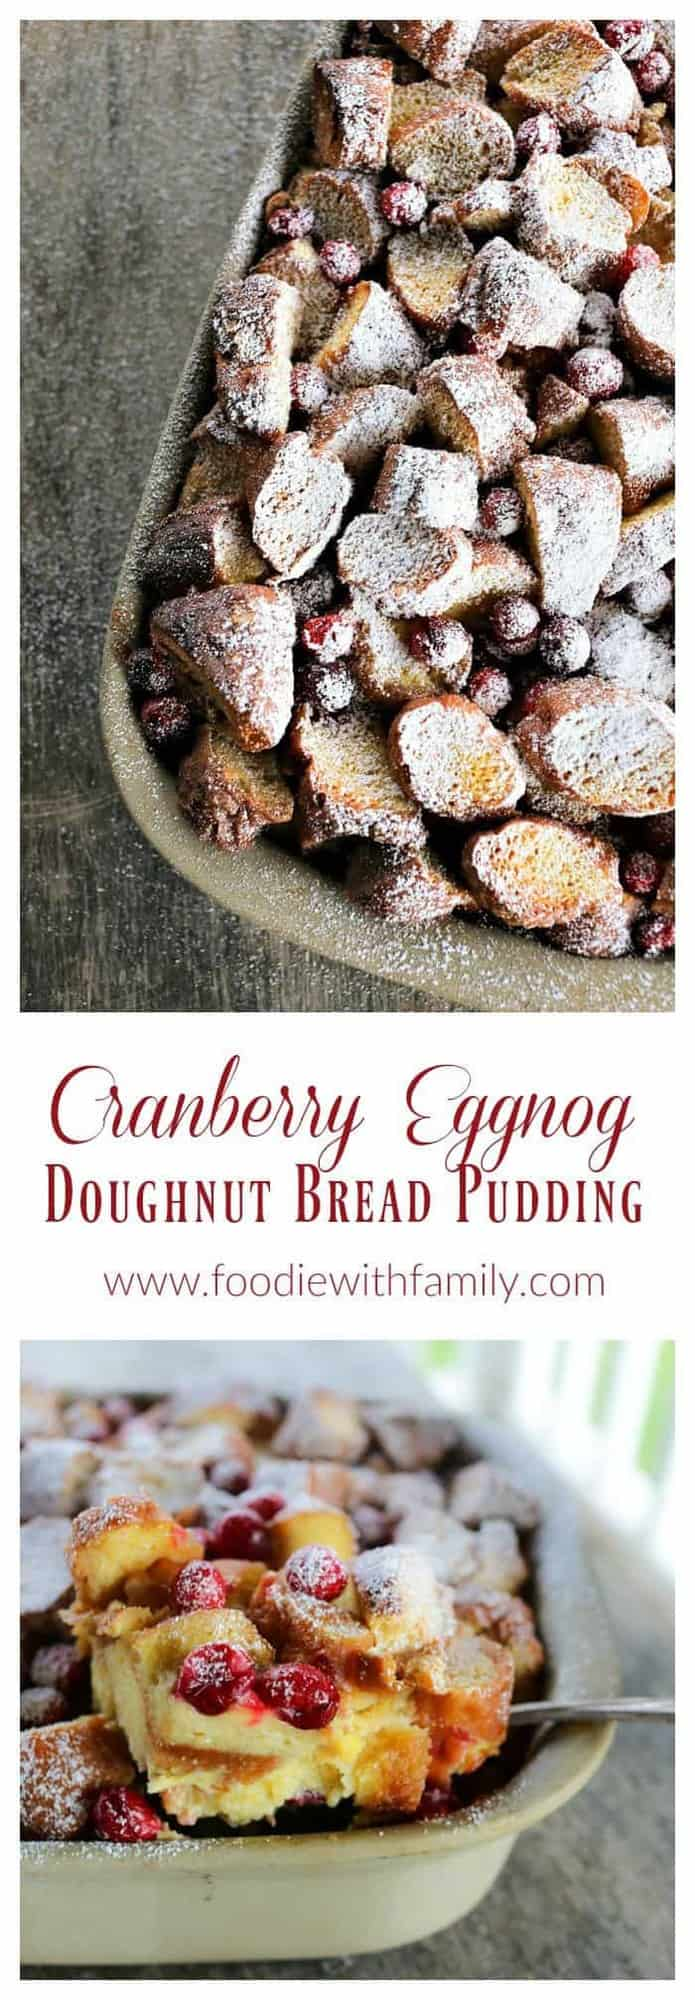 Rich, souffle-like, nutmeg flecked Cranberry Eggnog Doughnut Bread Pudding is the ultimate cold weather dessert.